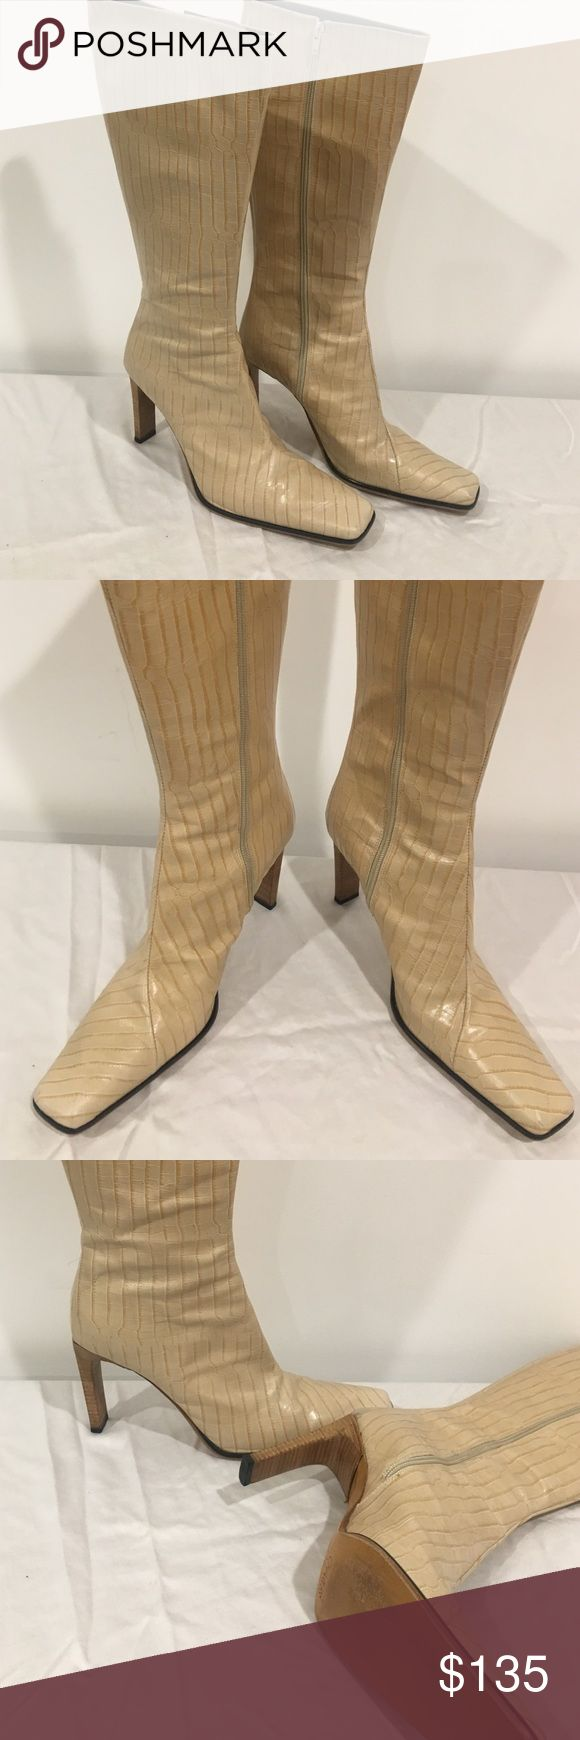 Charles David Croco Beige Boots Charles David Croco Beige Boots - Gently used - in box Charles David Shoes Heeled Boots